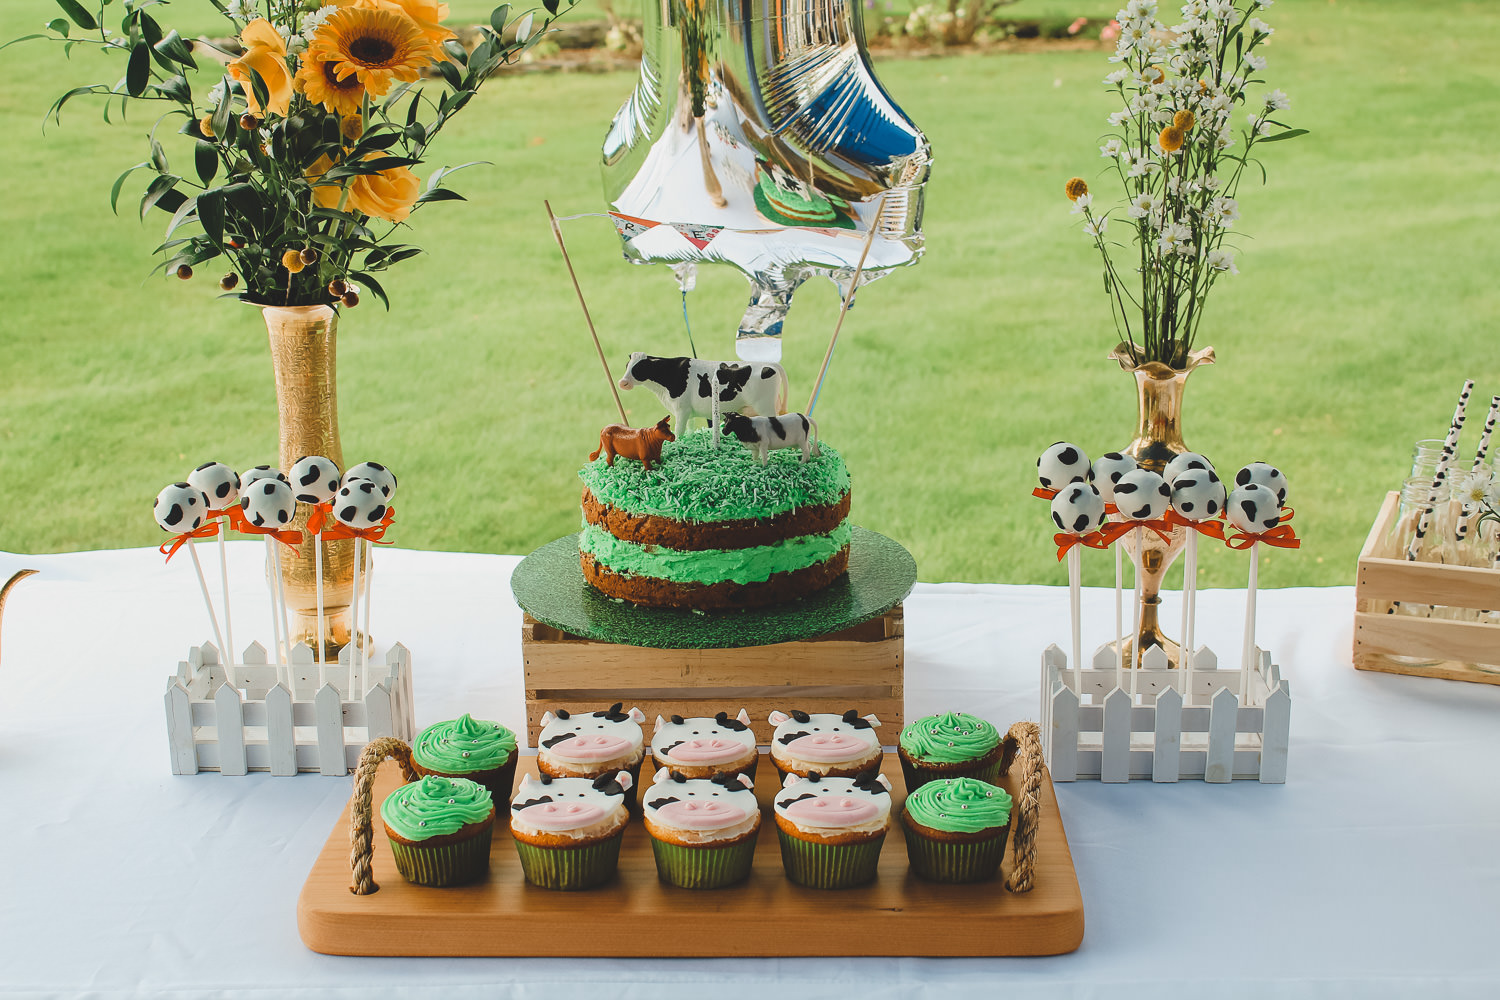 Auckland kid's birthday party planner